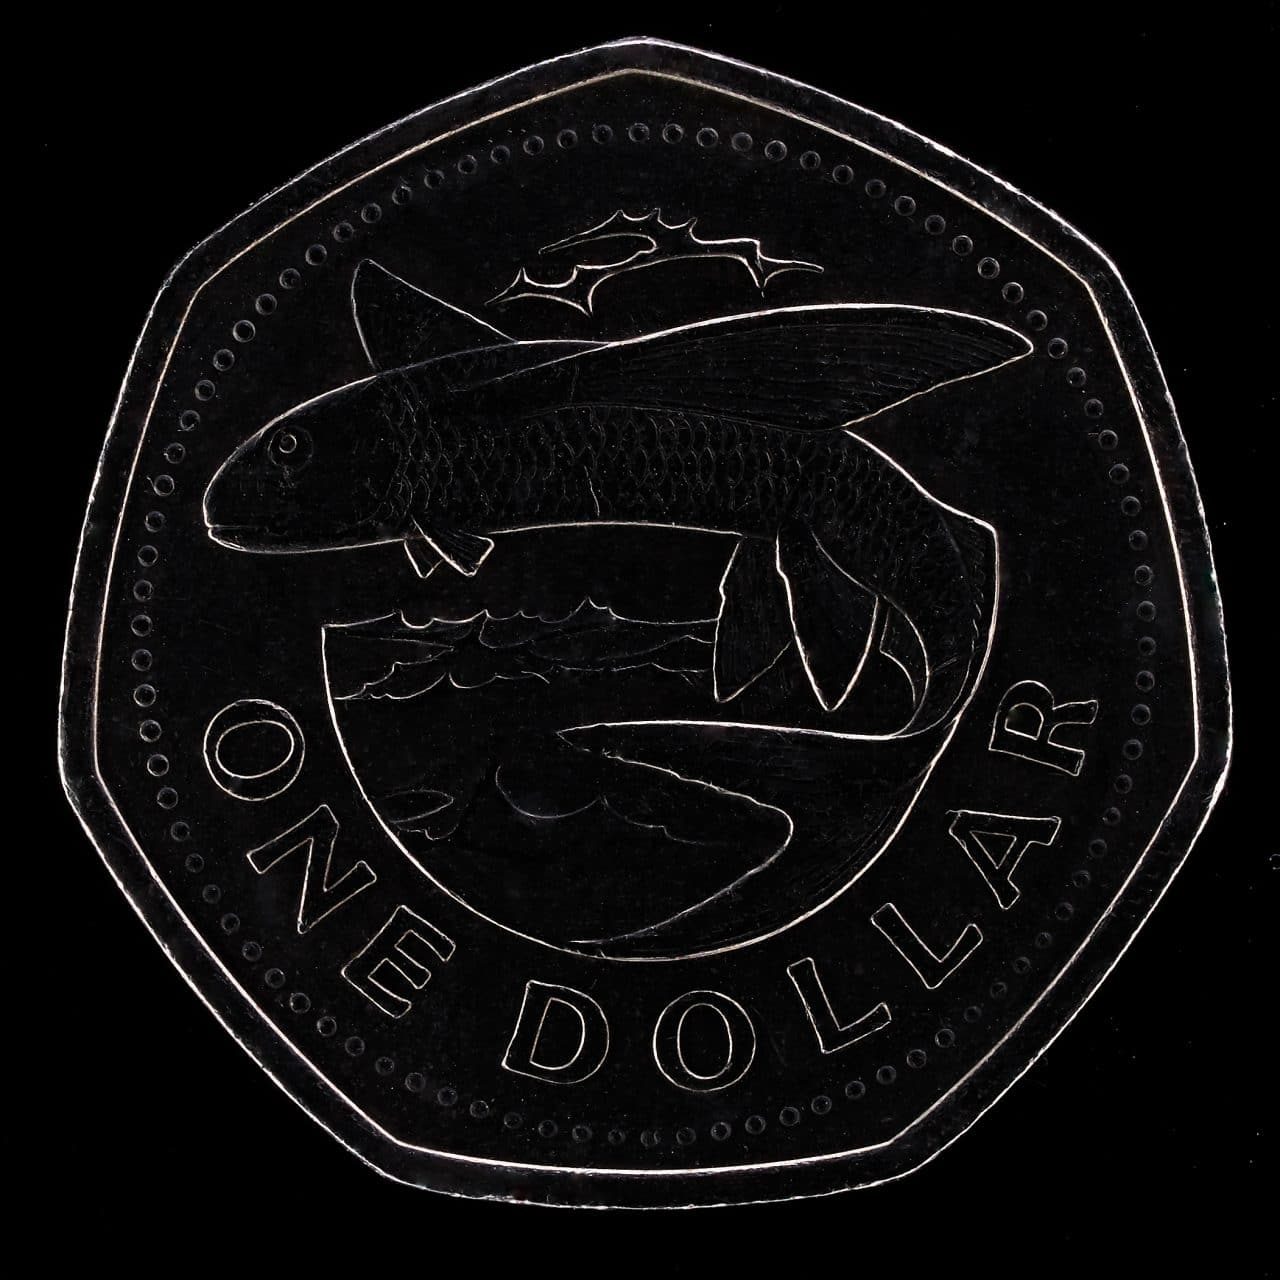 1 Dollar aus Barbados